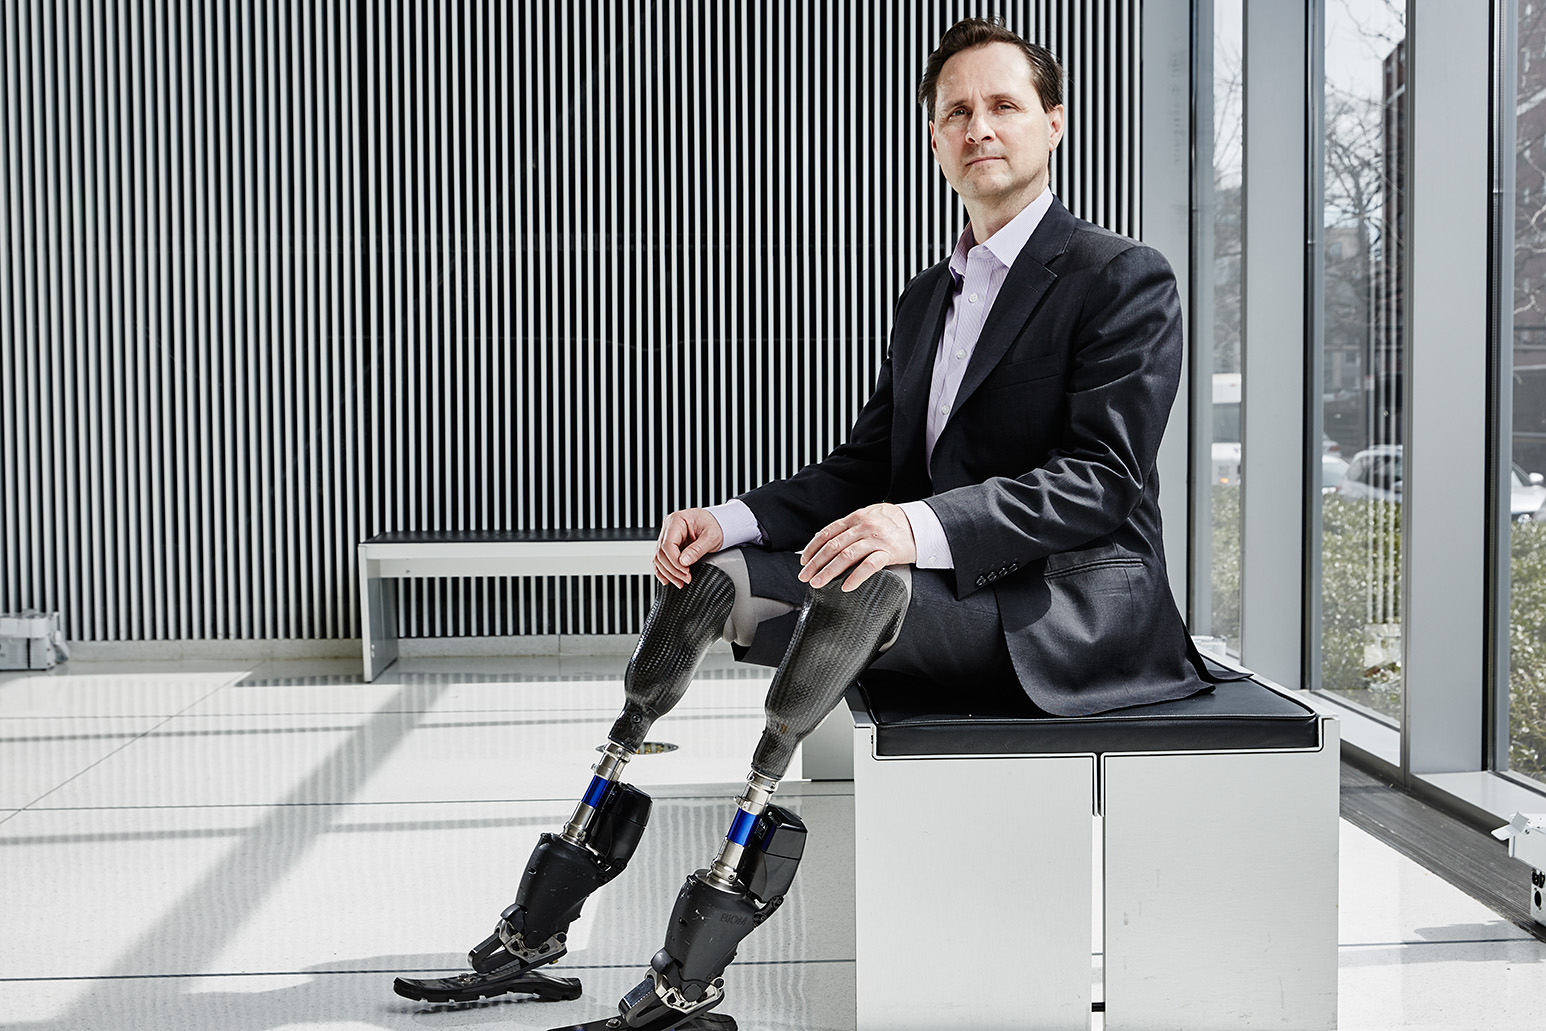 U S Bionic Knee And Ankle Prosthesis Pioneer Hugh Herr